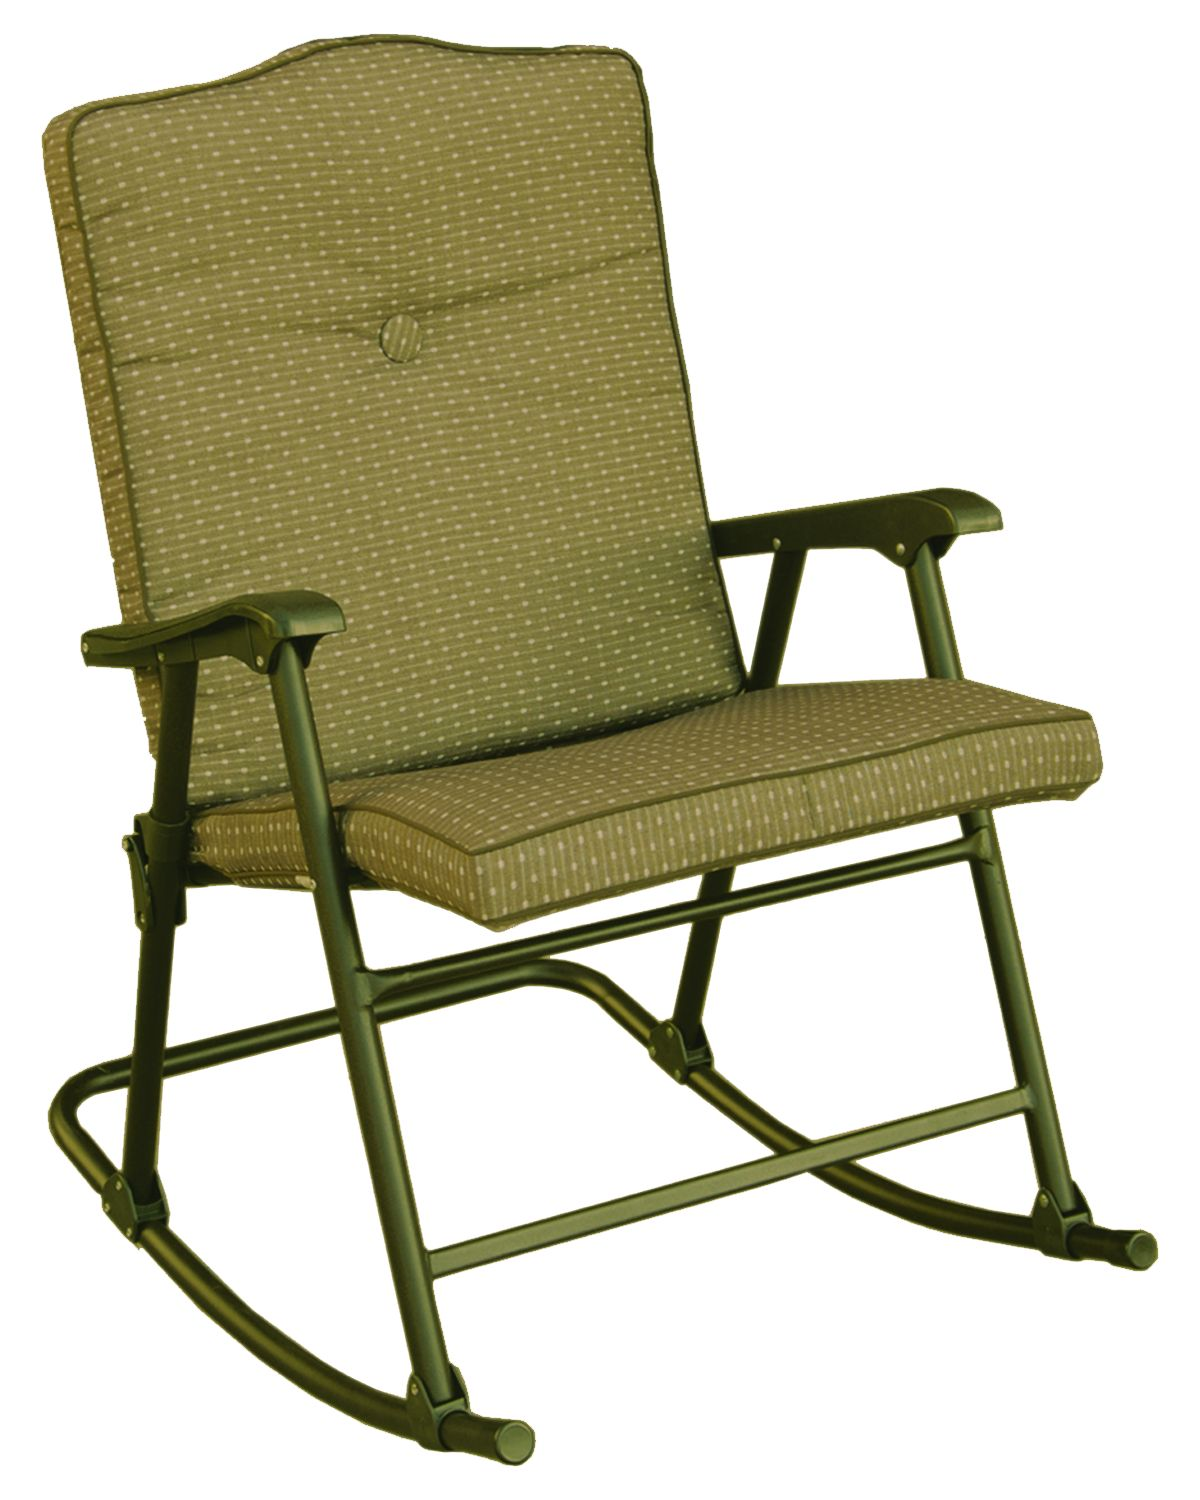 13-6605 Prime Products Chair Rocker